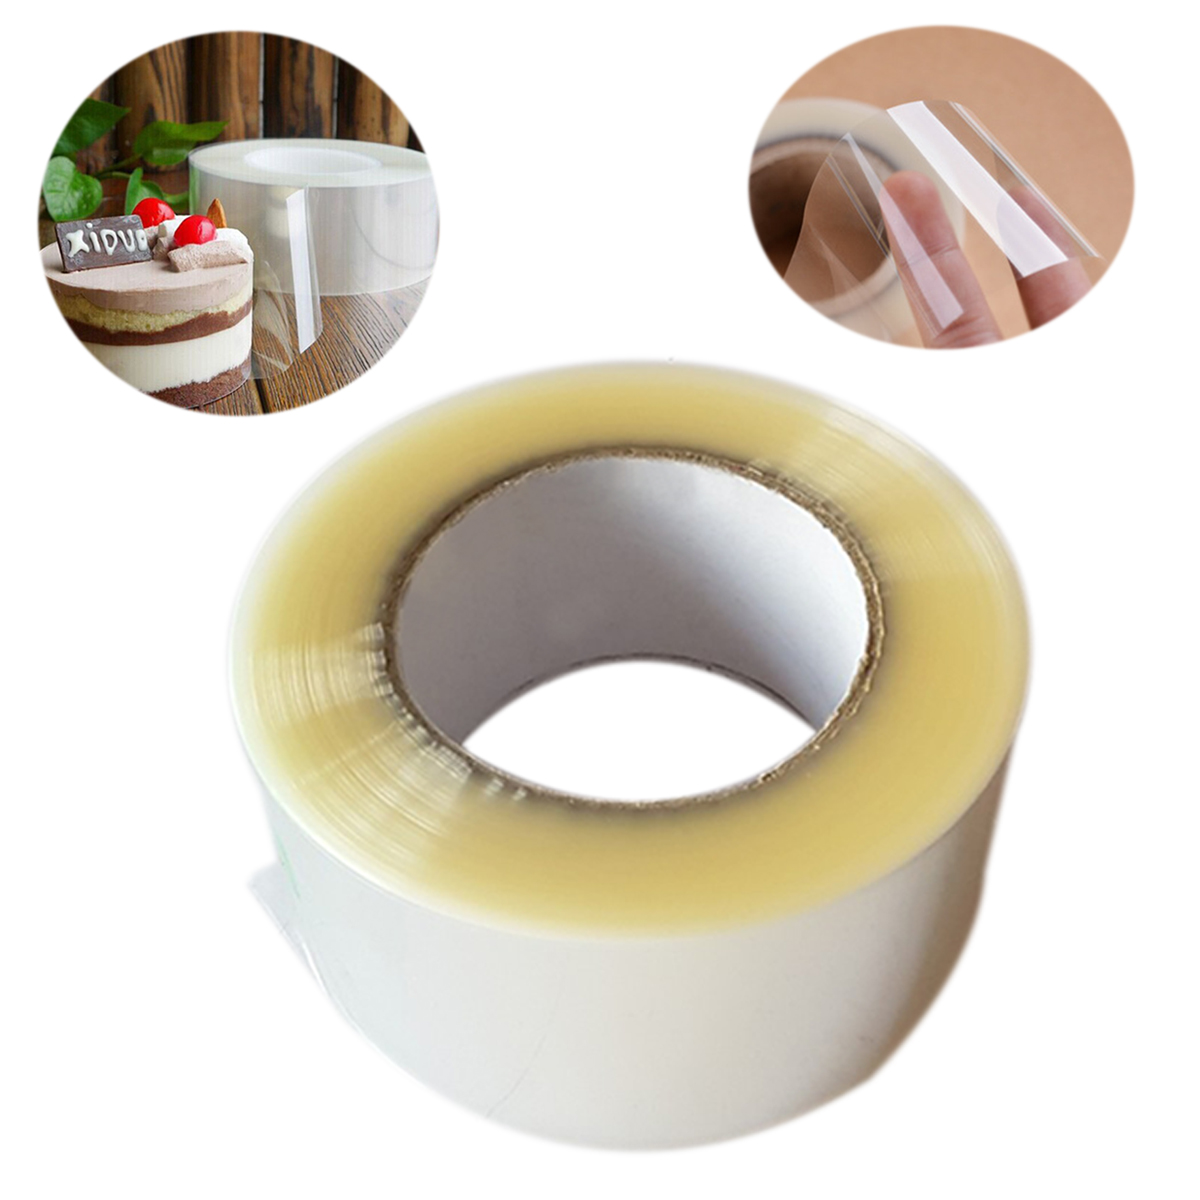 DIY Chocolate Mousse Cake Decorating Acetate Sheet Clear Roll 210M Christmas Home Birthday Party Decoration